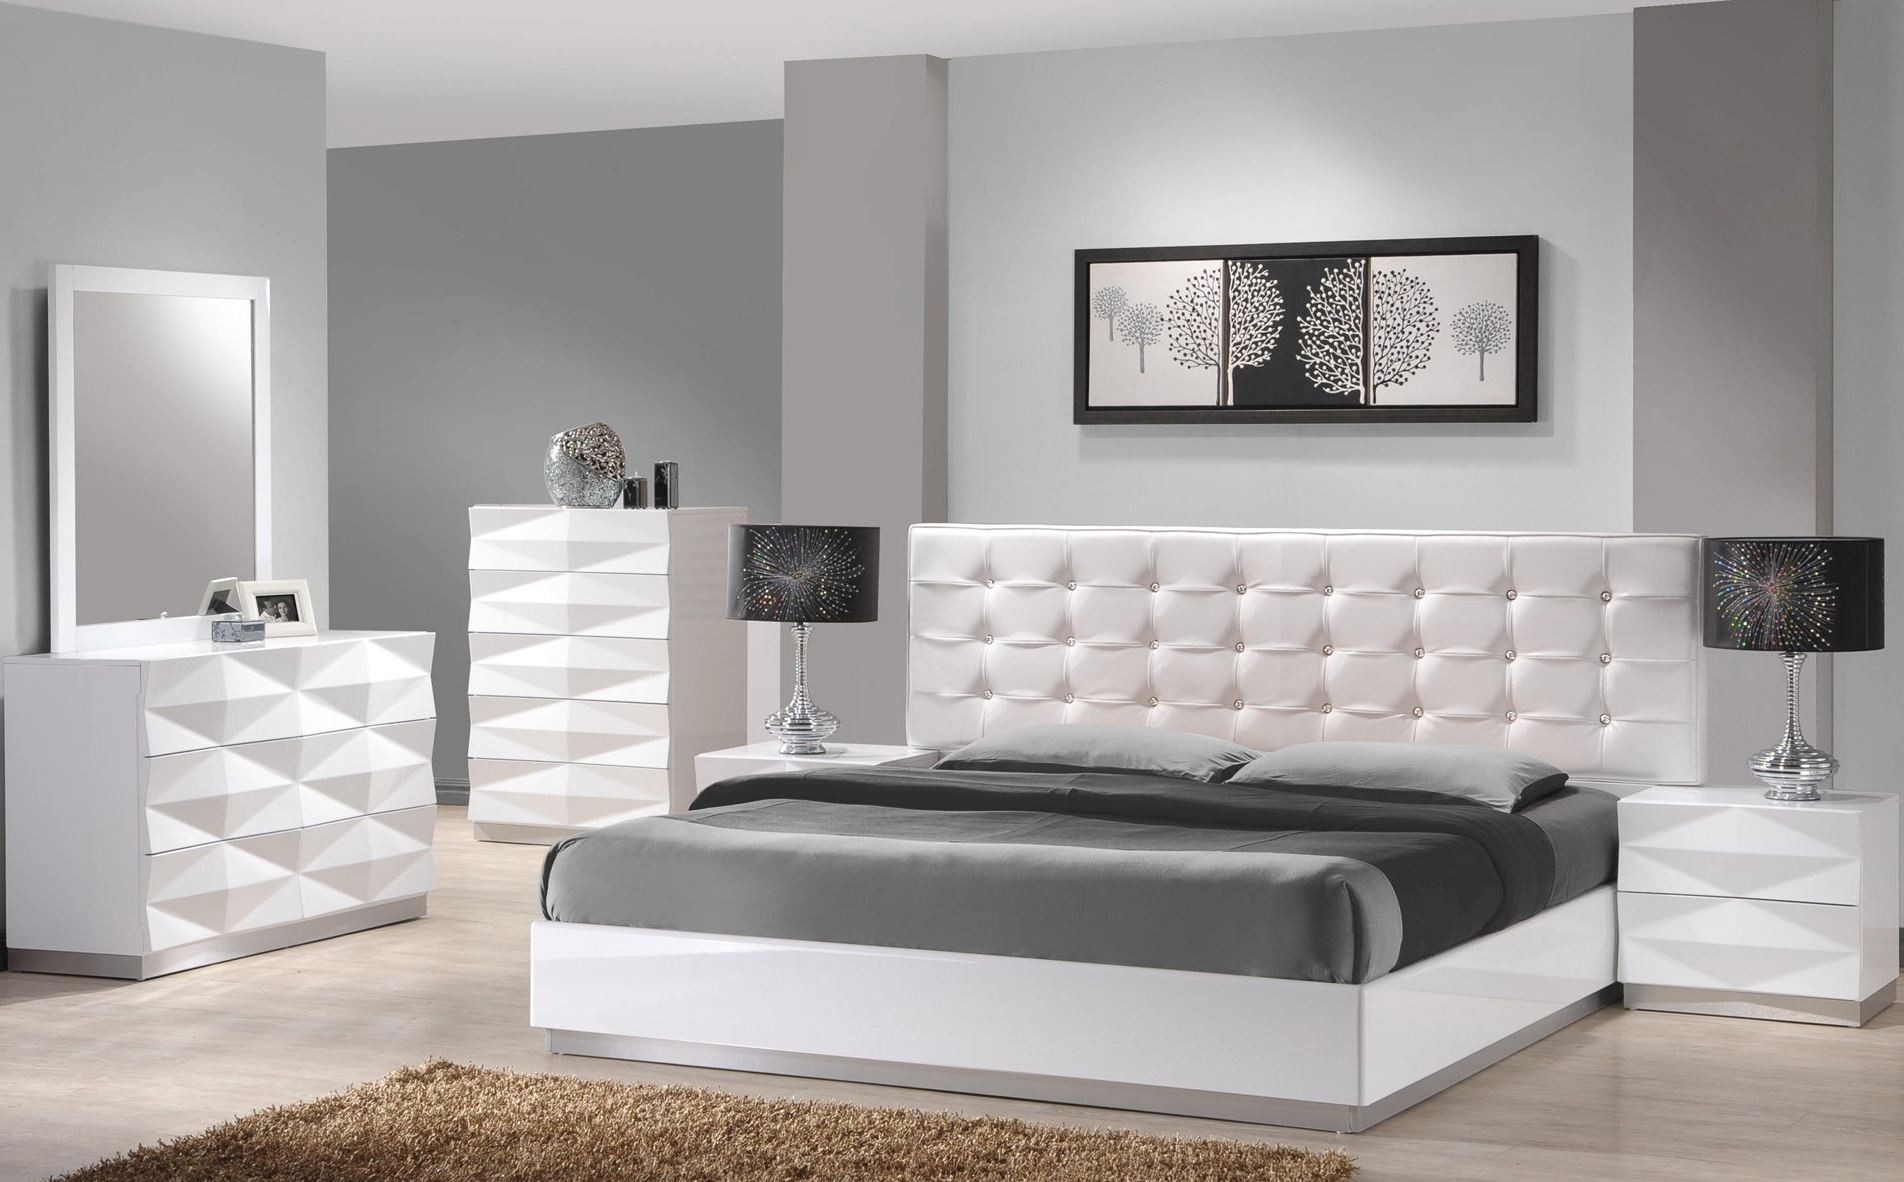 Verona White Lacquer Platform Bedroom Set From J M 17688 Q Coleman Fu